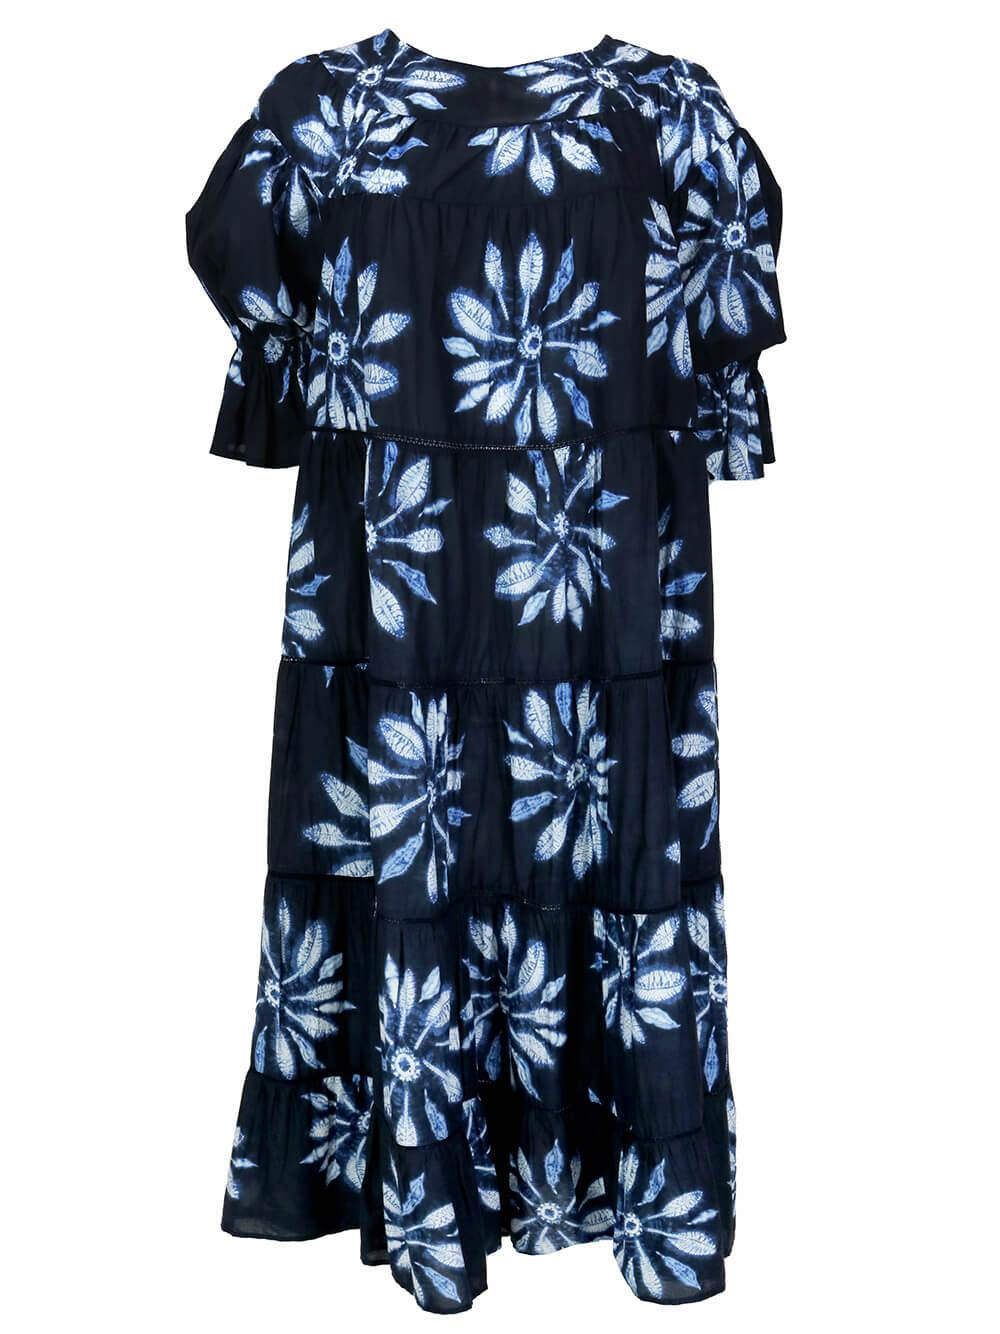 Paradis Shibori Dress Item # 1C5N535SL